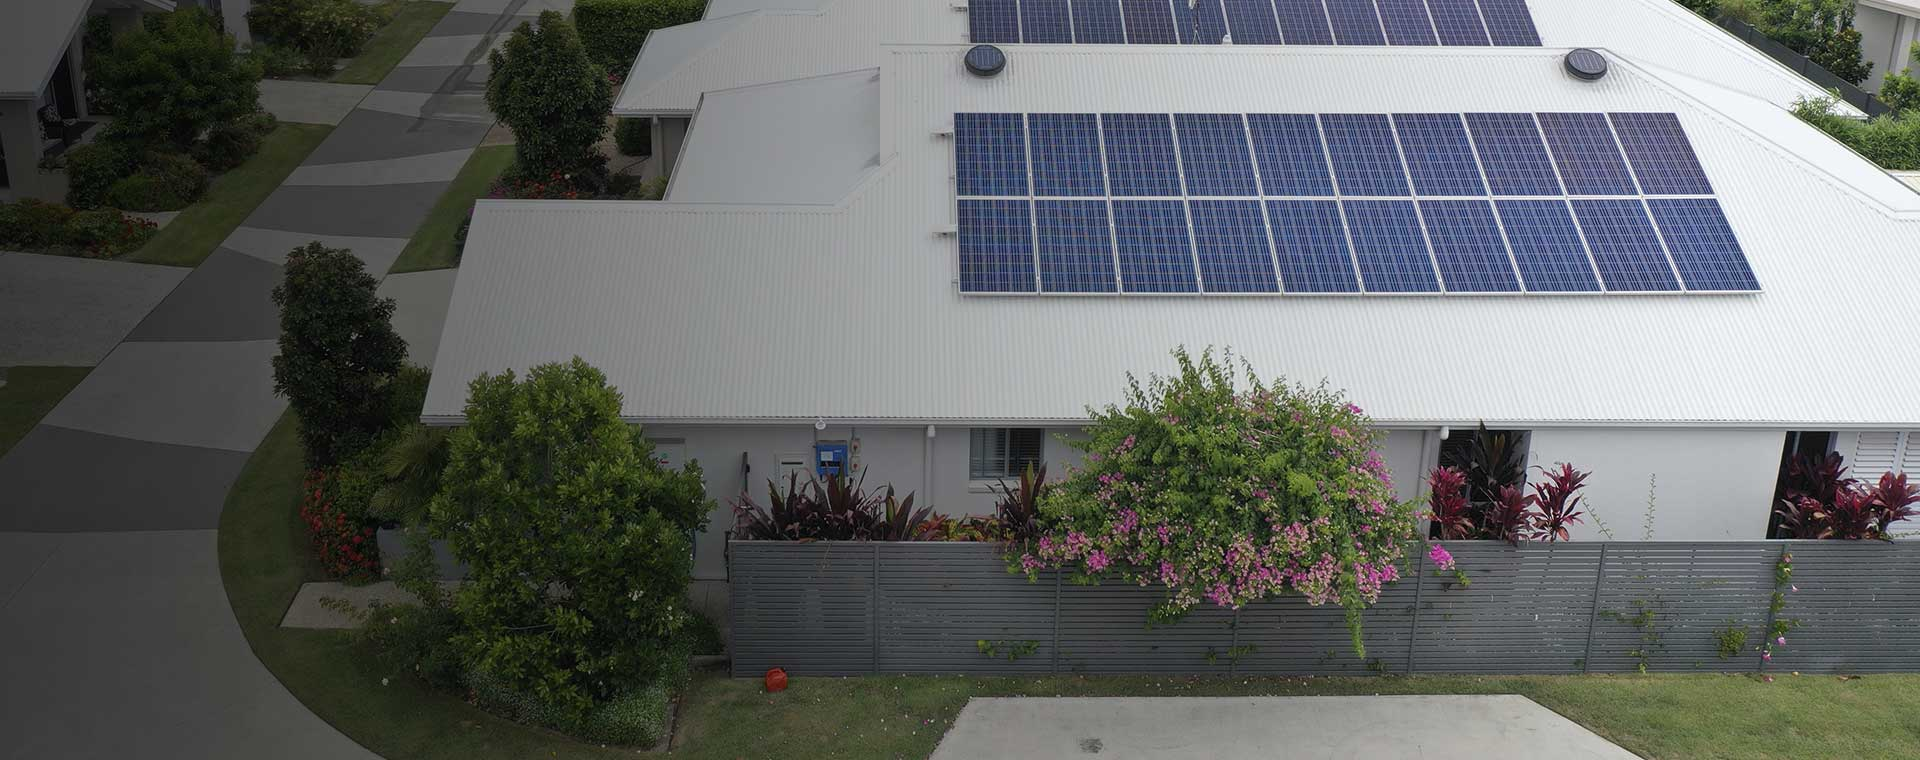 Garanty Solar and Electrical